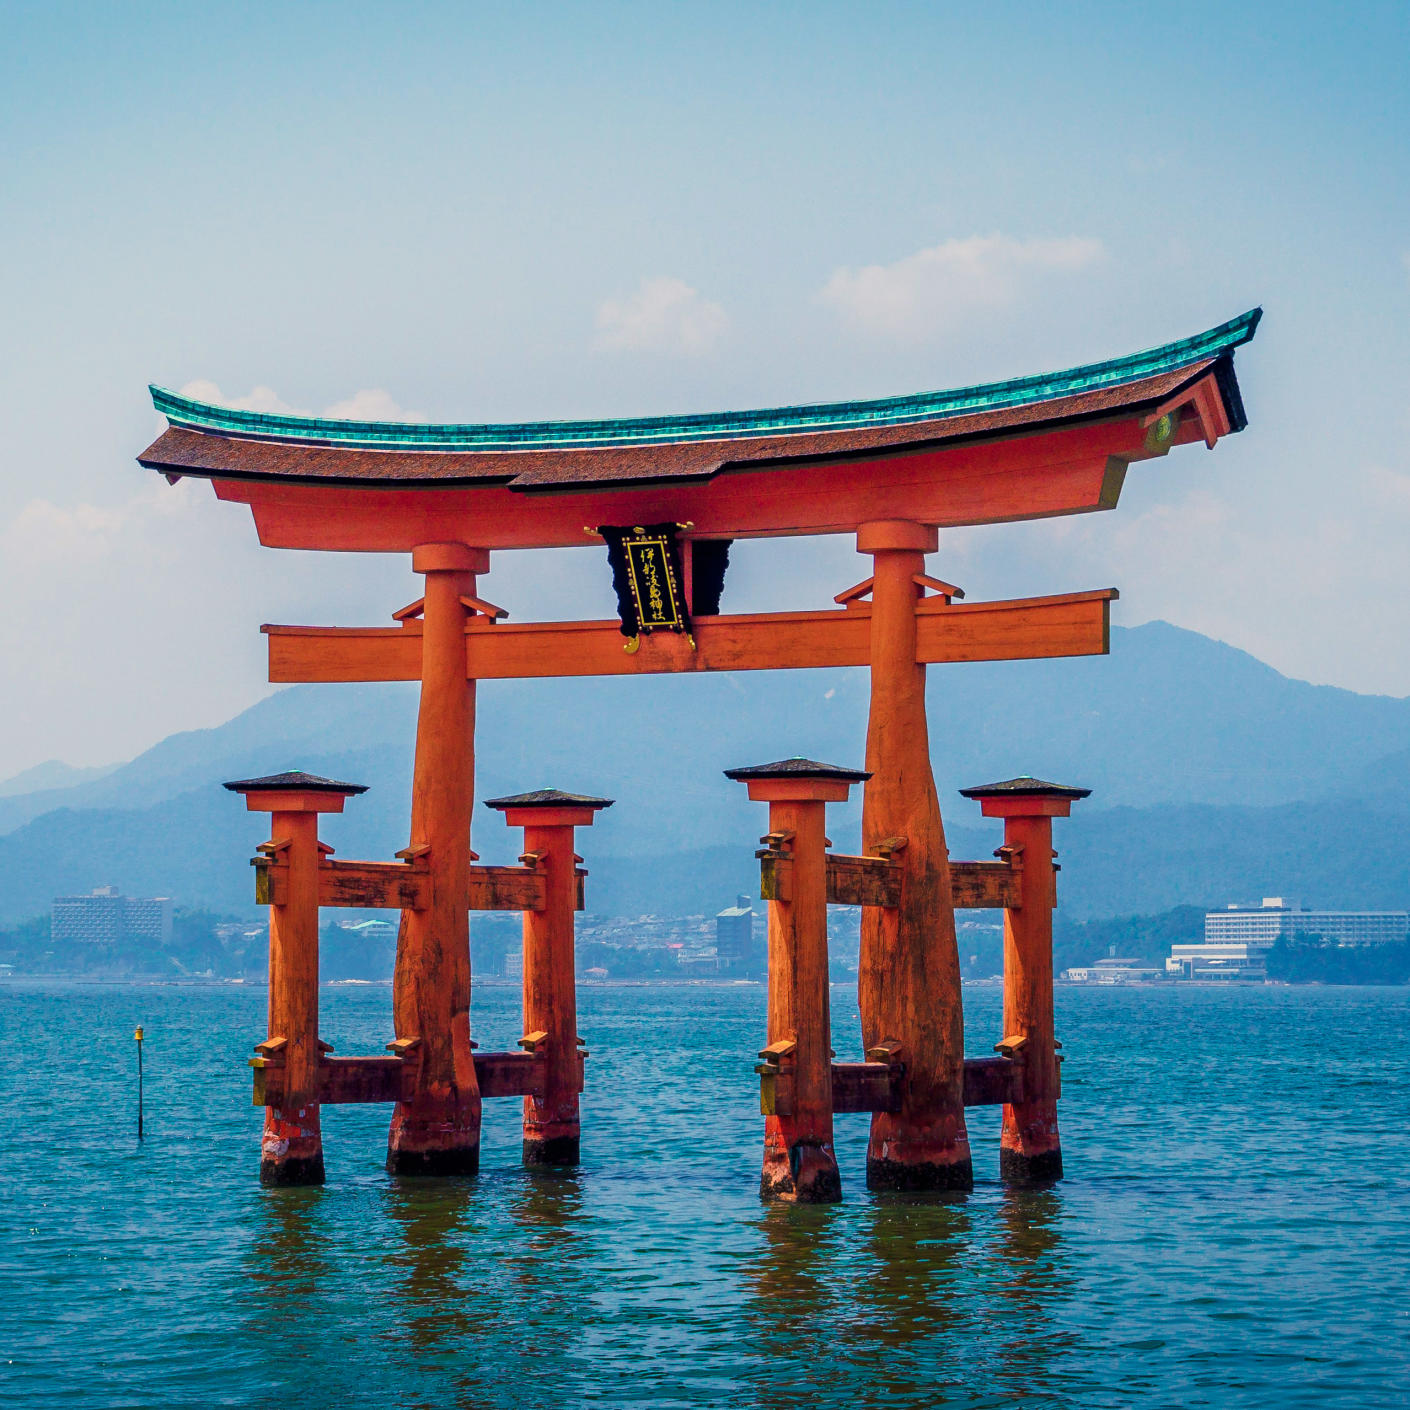 Japanese shinto Itsukushima Shrine in orange partially submerged in water set amidst a mountain backdrop.